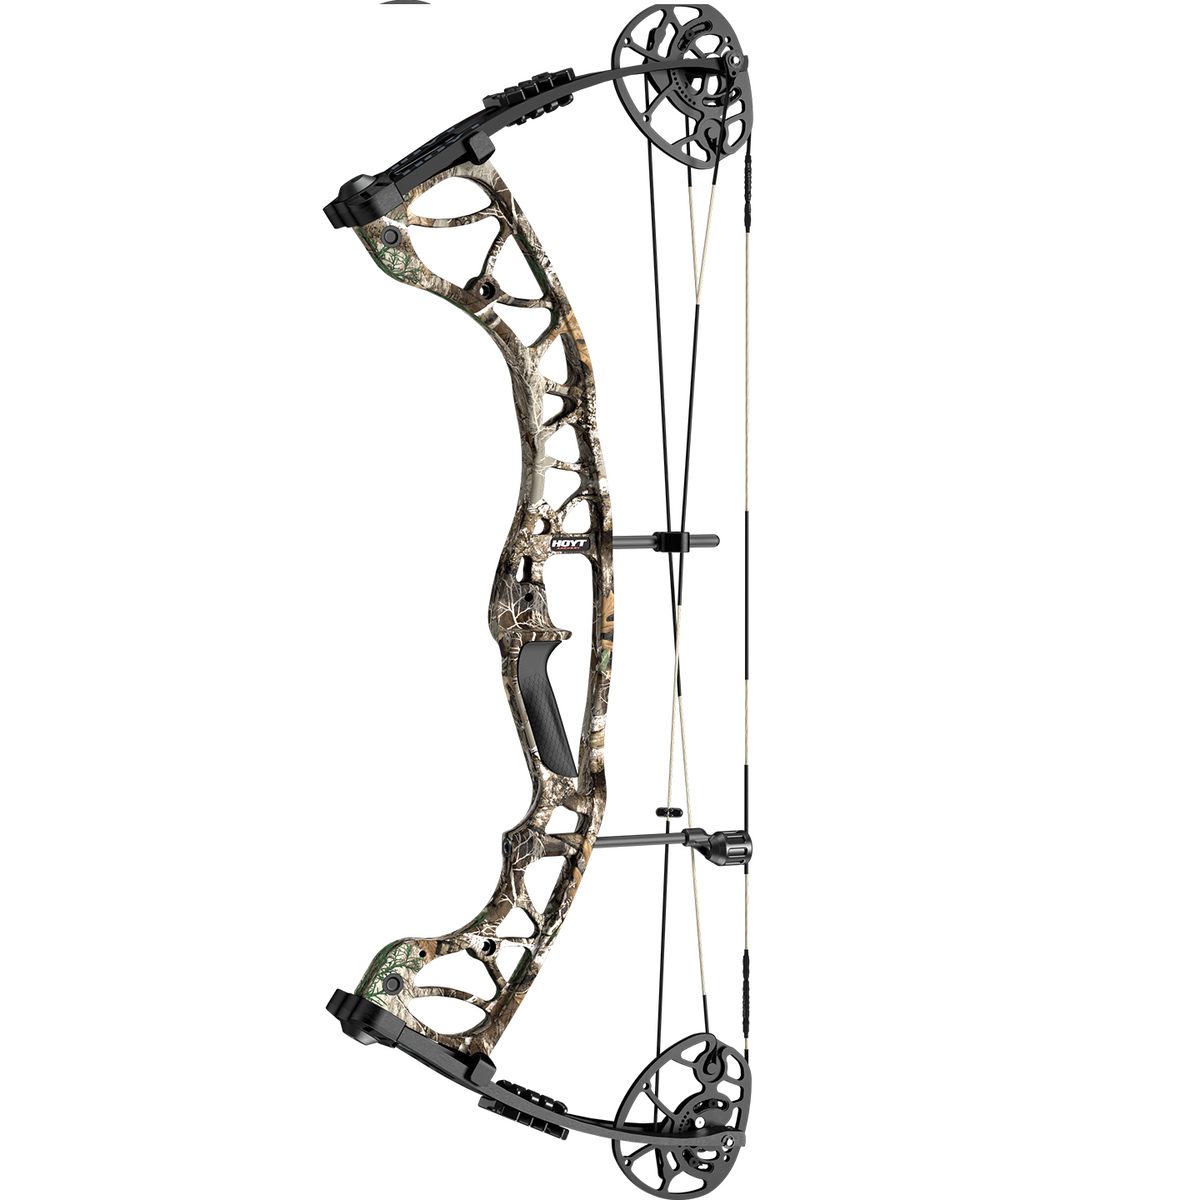 Hoyt Torrex Compound Bow ( In Stock)